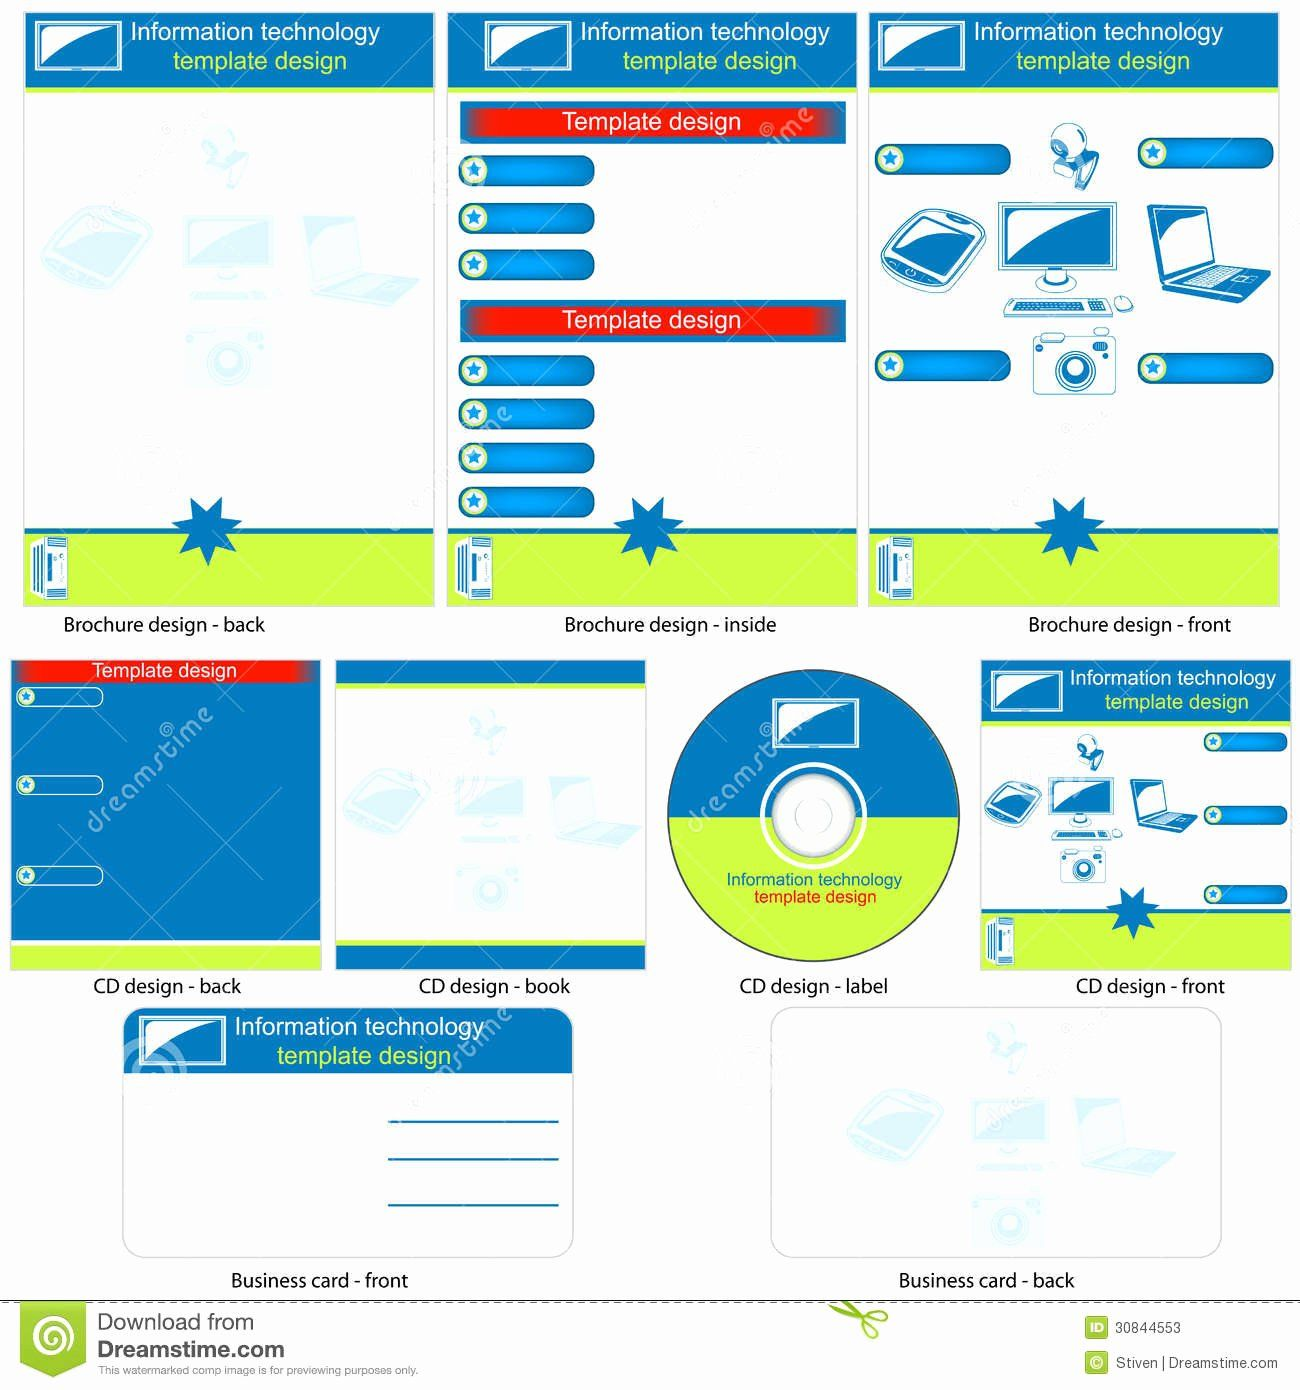 Information Technology Planning Template Awesome Information Technology Template Stock Vector Information Technology Templates Business Plan Template